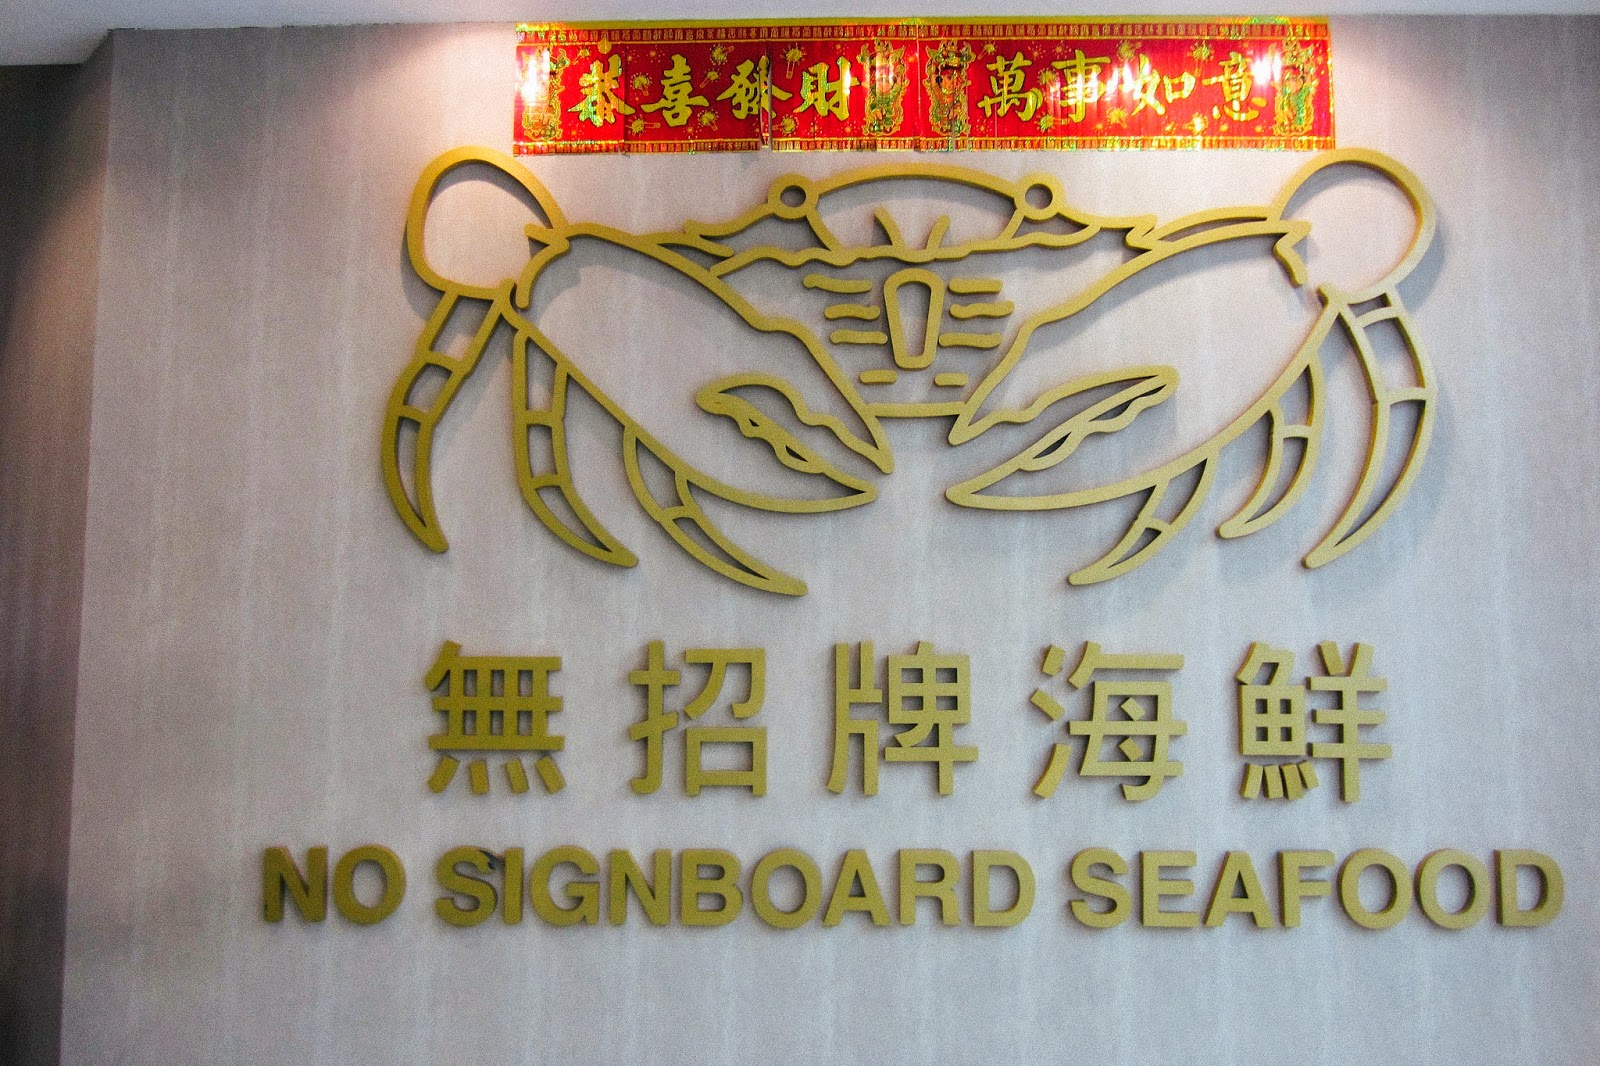 no signboard seafood logo storefront